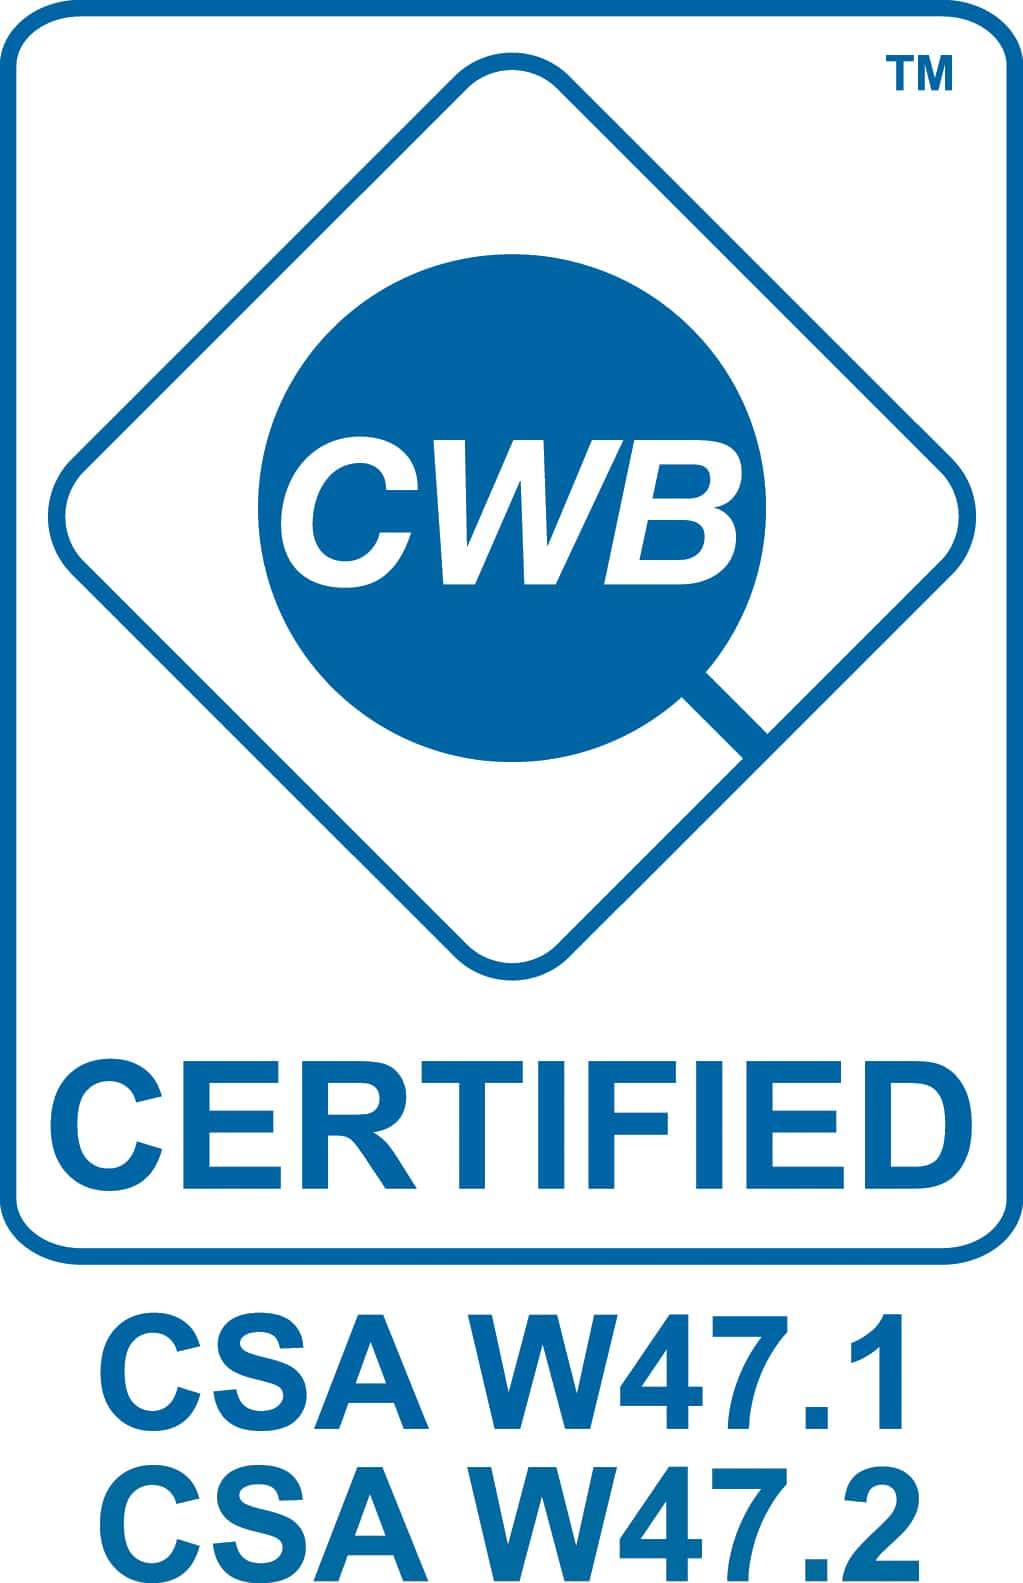 CWB Certification Mark EN W47_1 W47_2